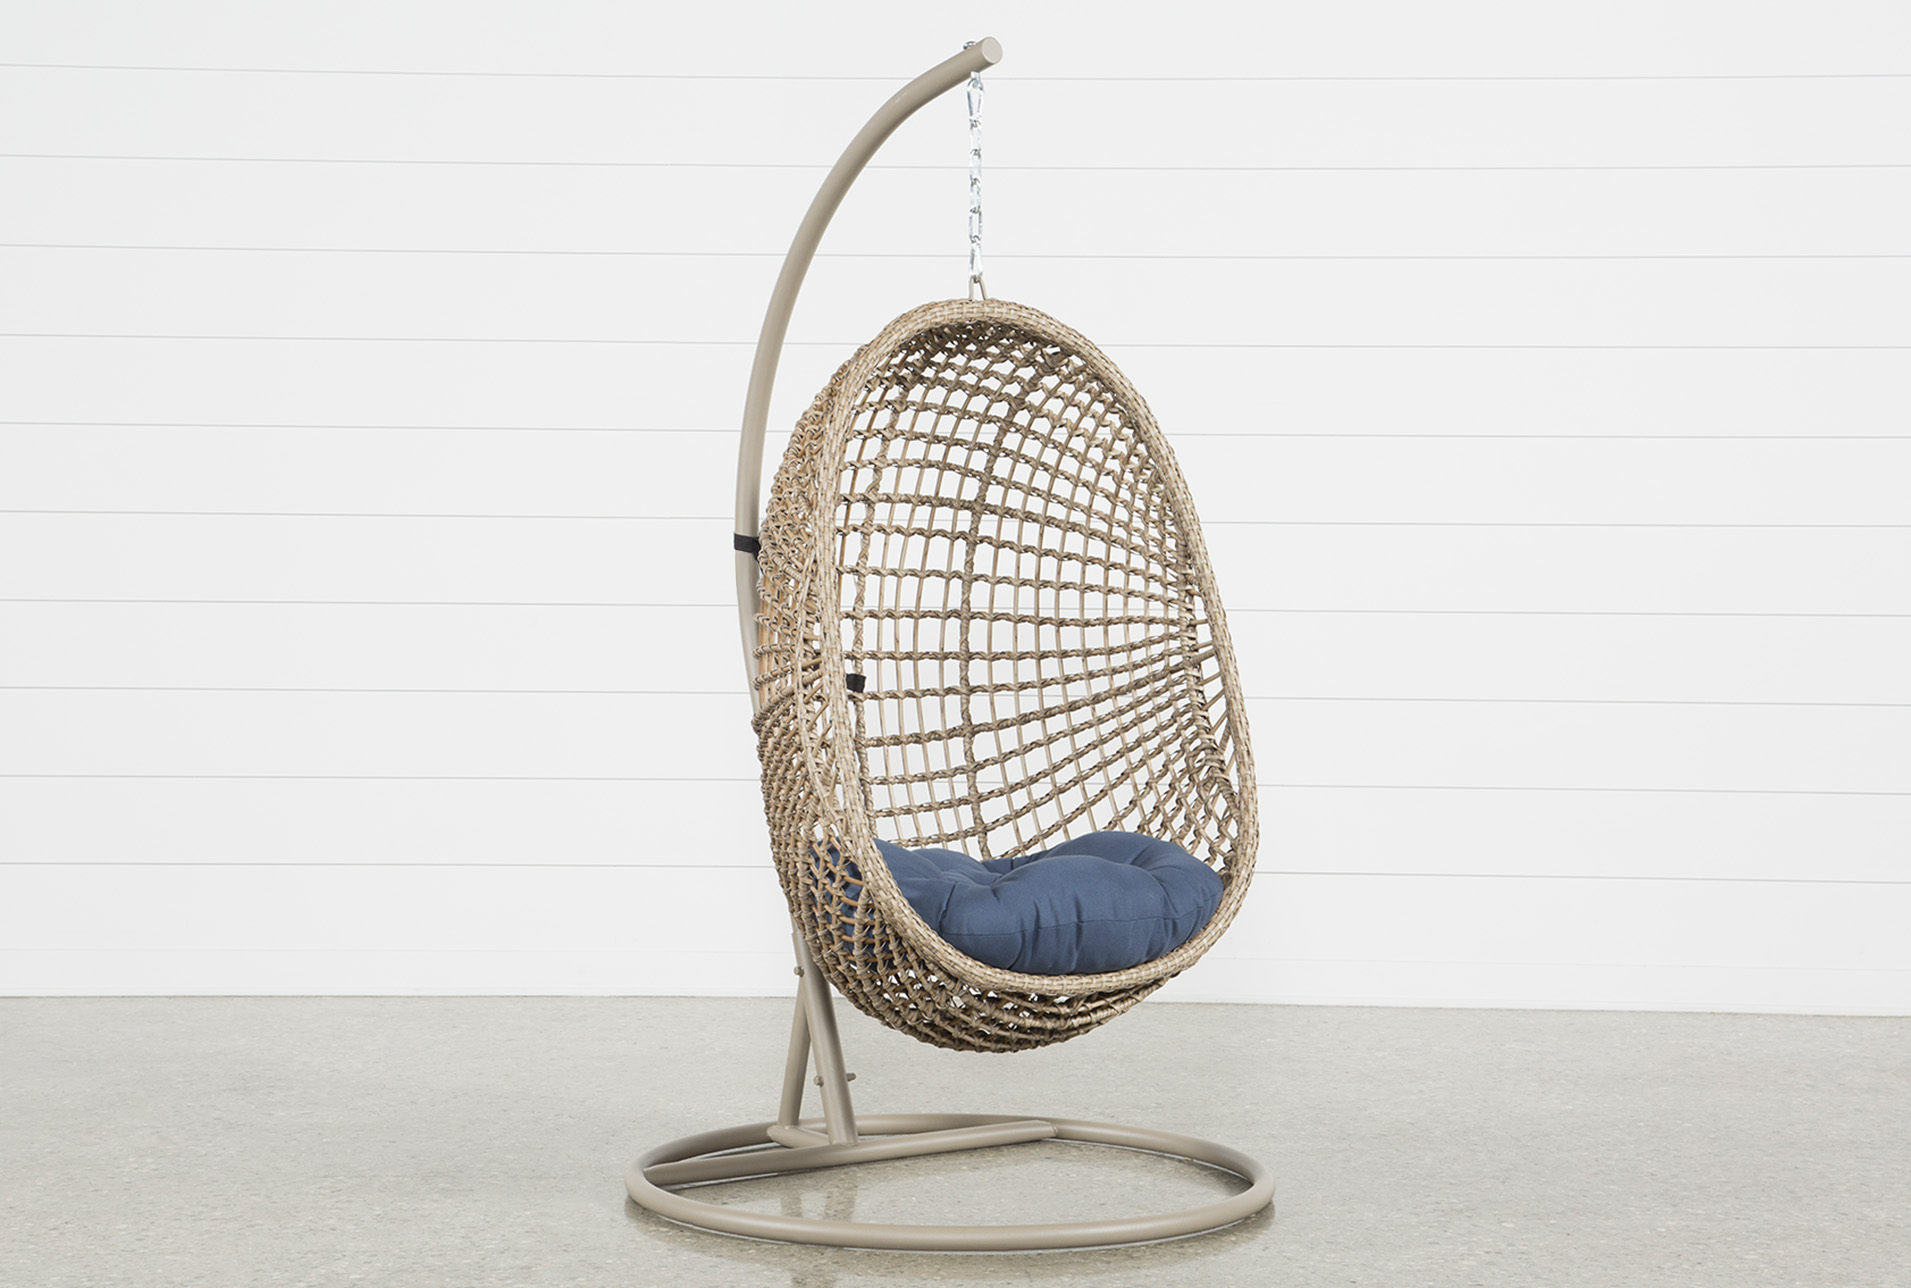 Wicker Egg Chairs For Sale Outdoor Grenada Egg Chair